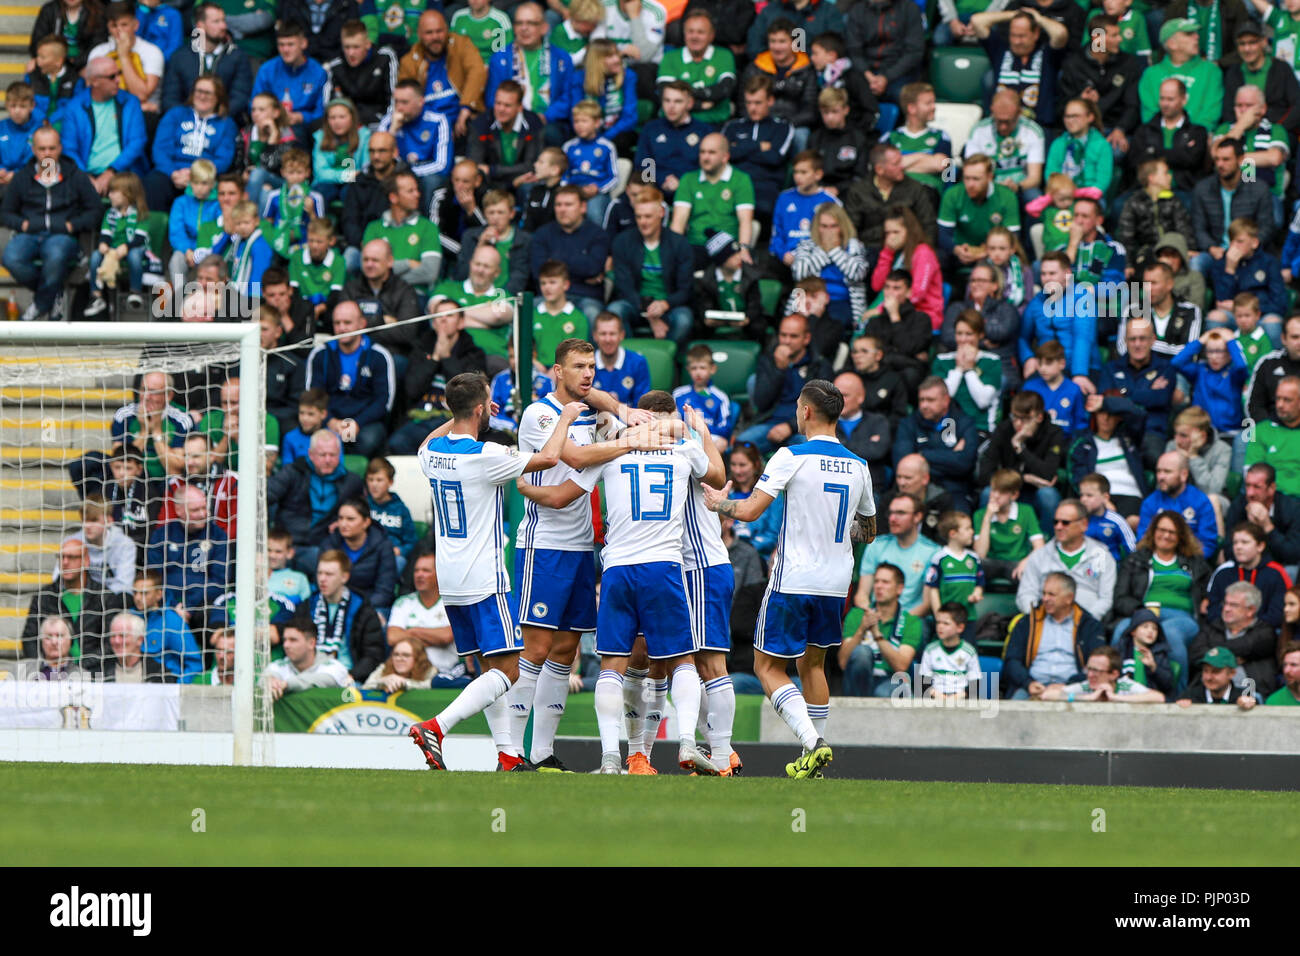 Belfast, Northern Ireland. Saturday 08 September, 2018   Bosnia & Herzegovina celebrate their second goal in front of a disheartened Northern Ireland crowd  Credit: Graham Service Credit: Graham  Service/Alamy Live News - Stock Image